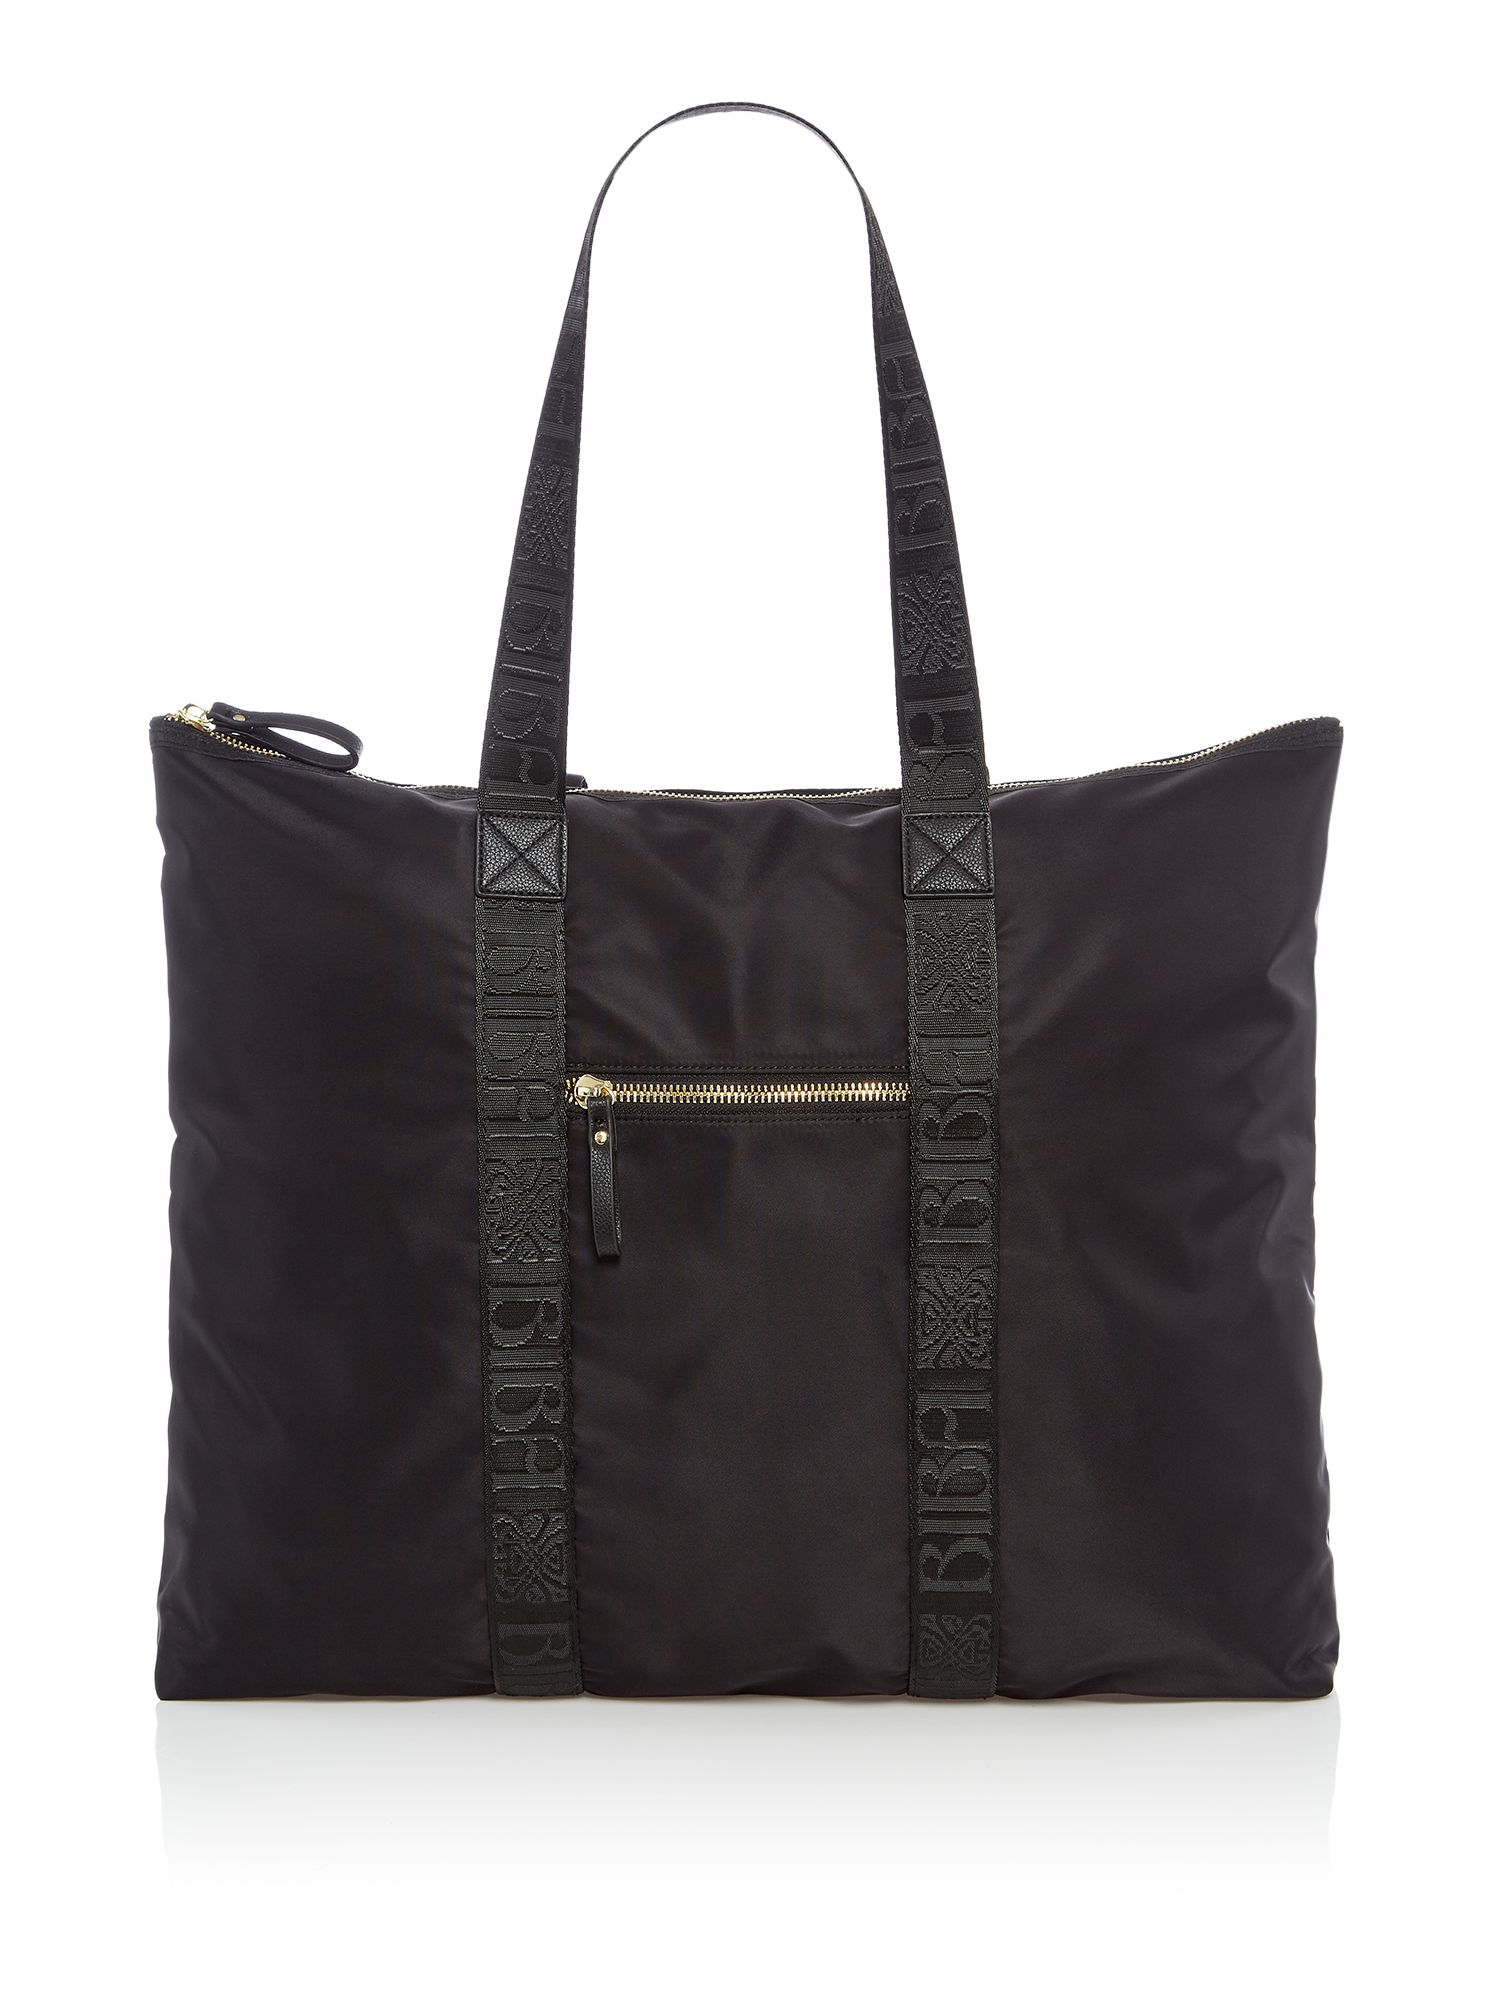 Biba Biba body tote bag, Black